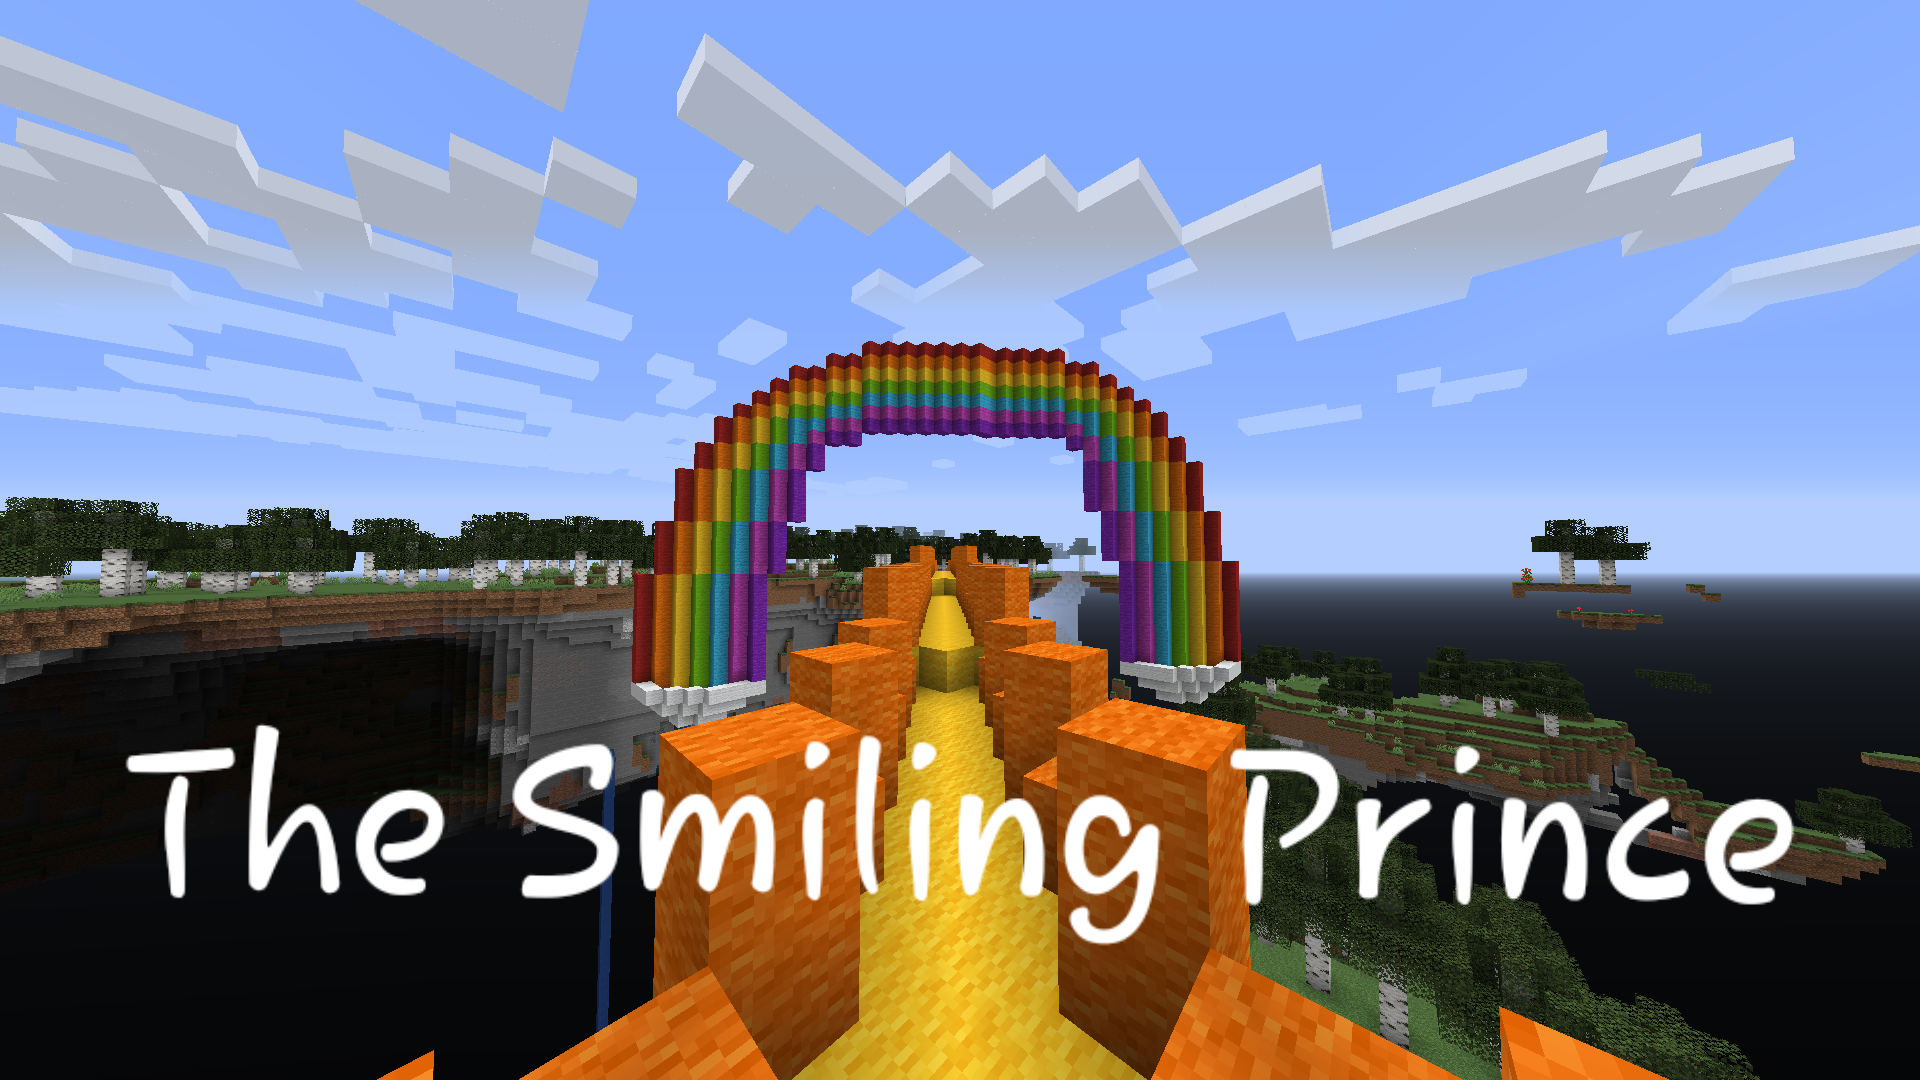 Download The Smiling Prince for Minecraft 1.14.3